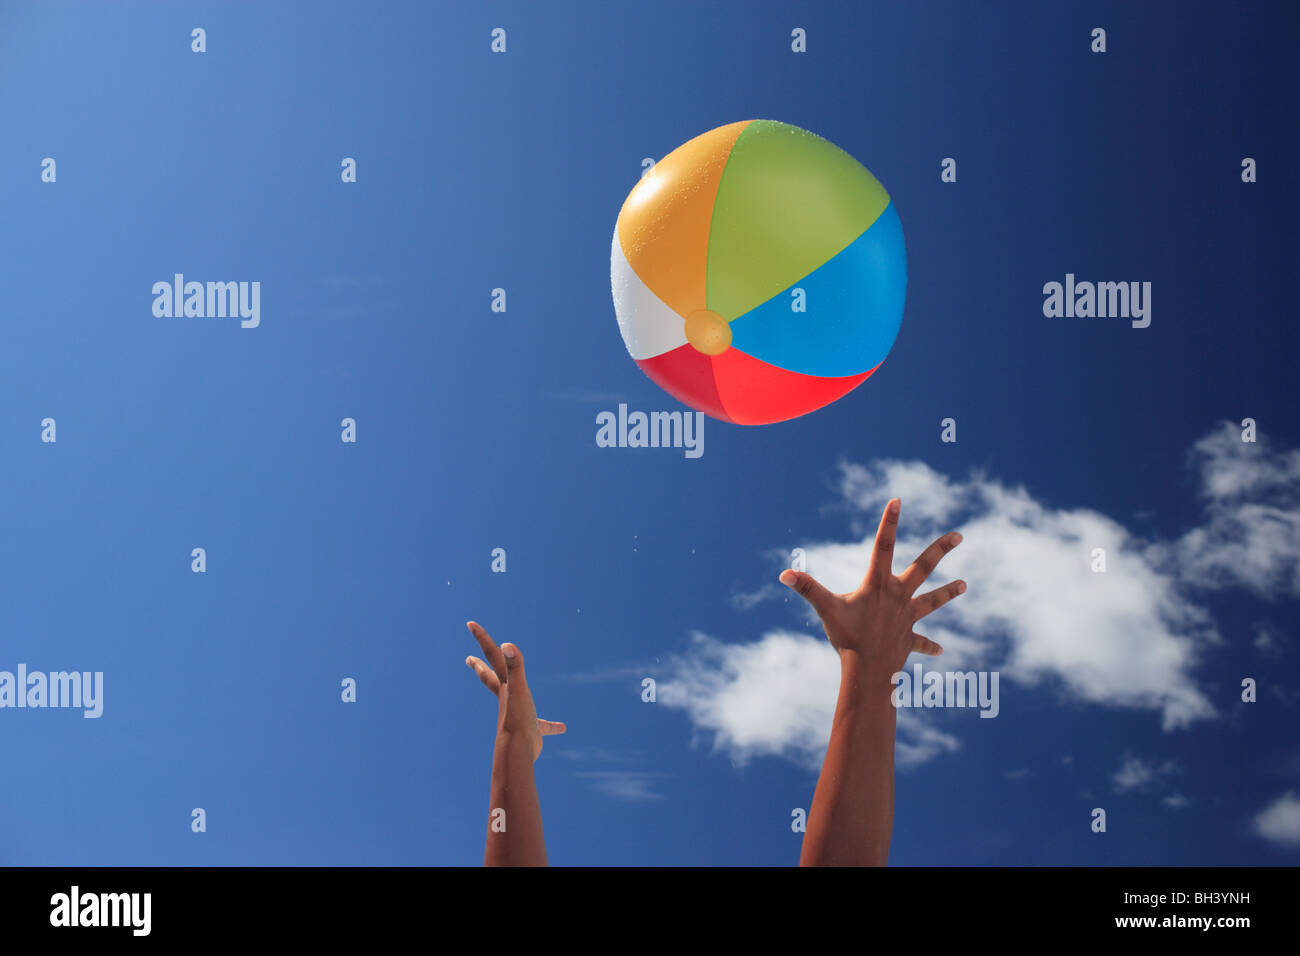 Les mains d'une femme jetant un ballon de plage gonflable dans l'air Photo Stock